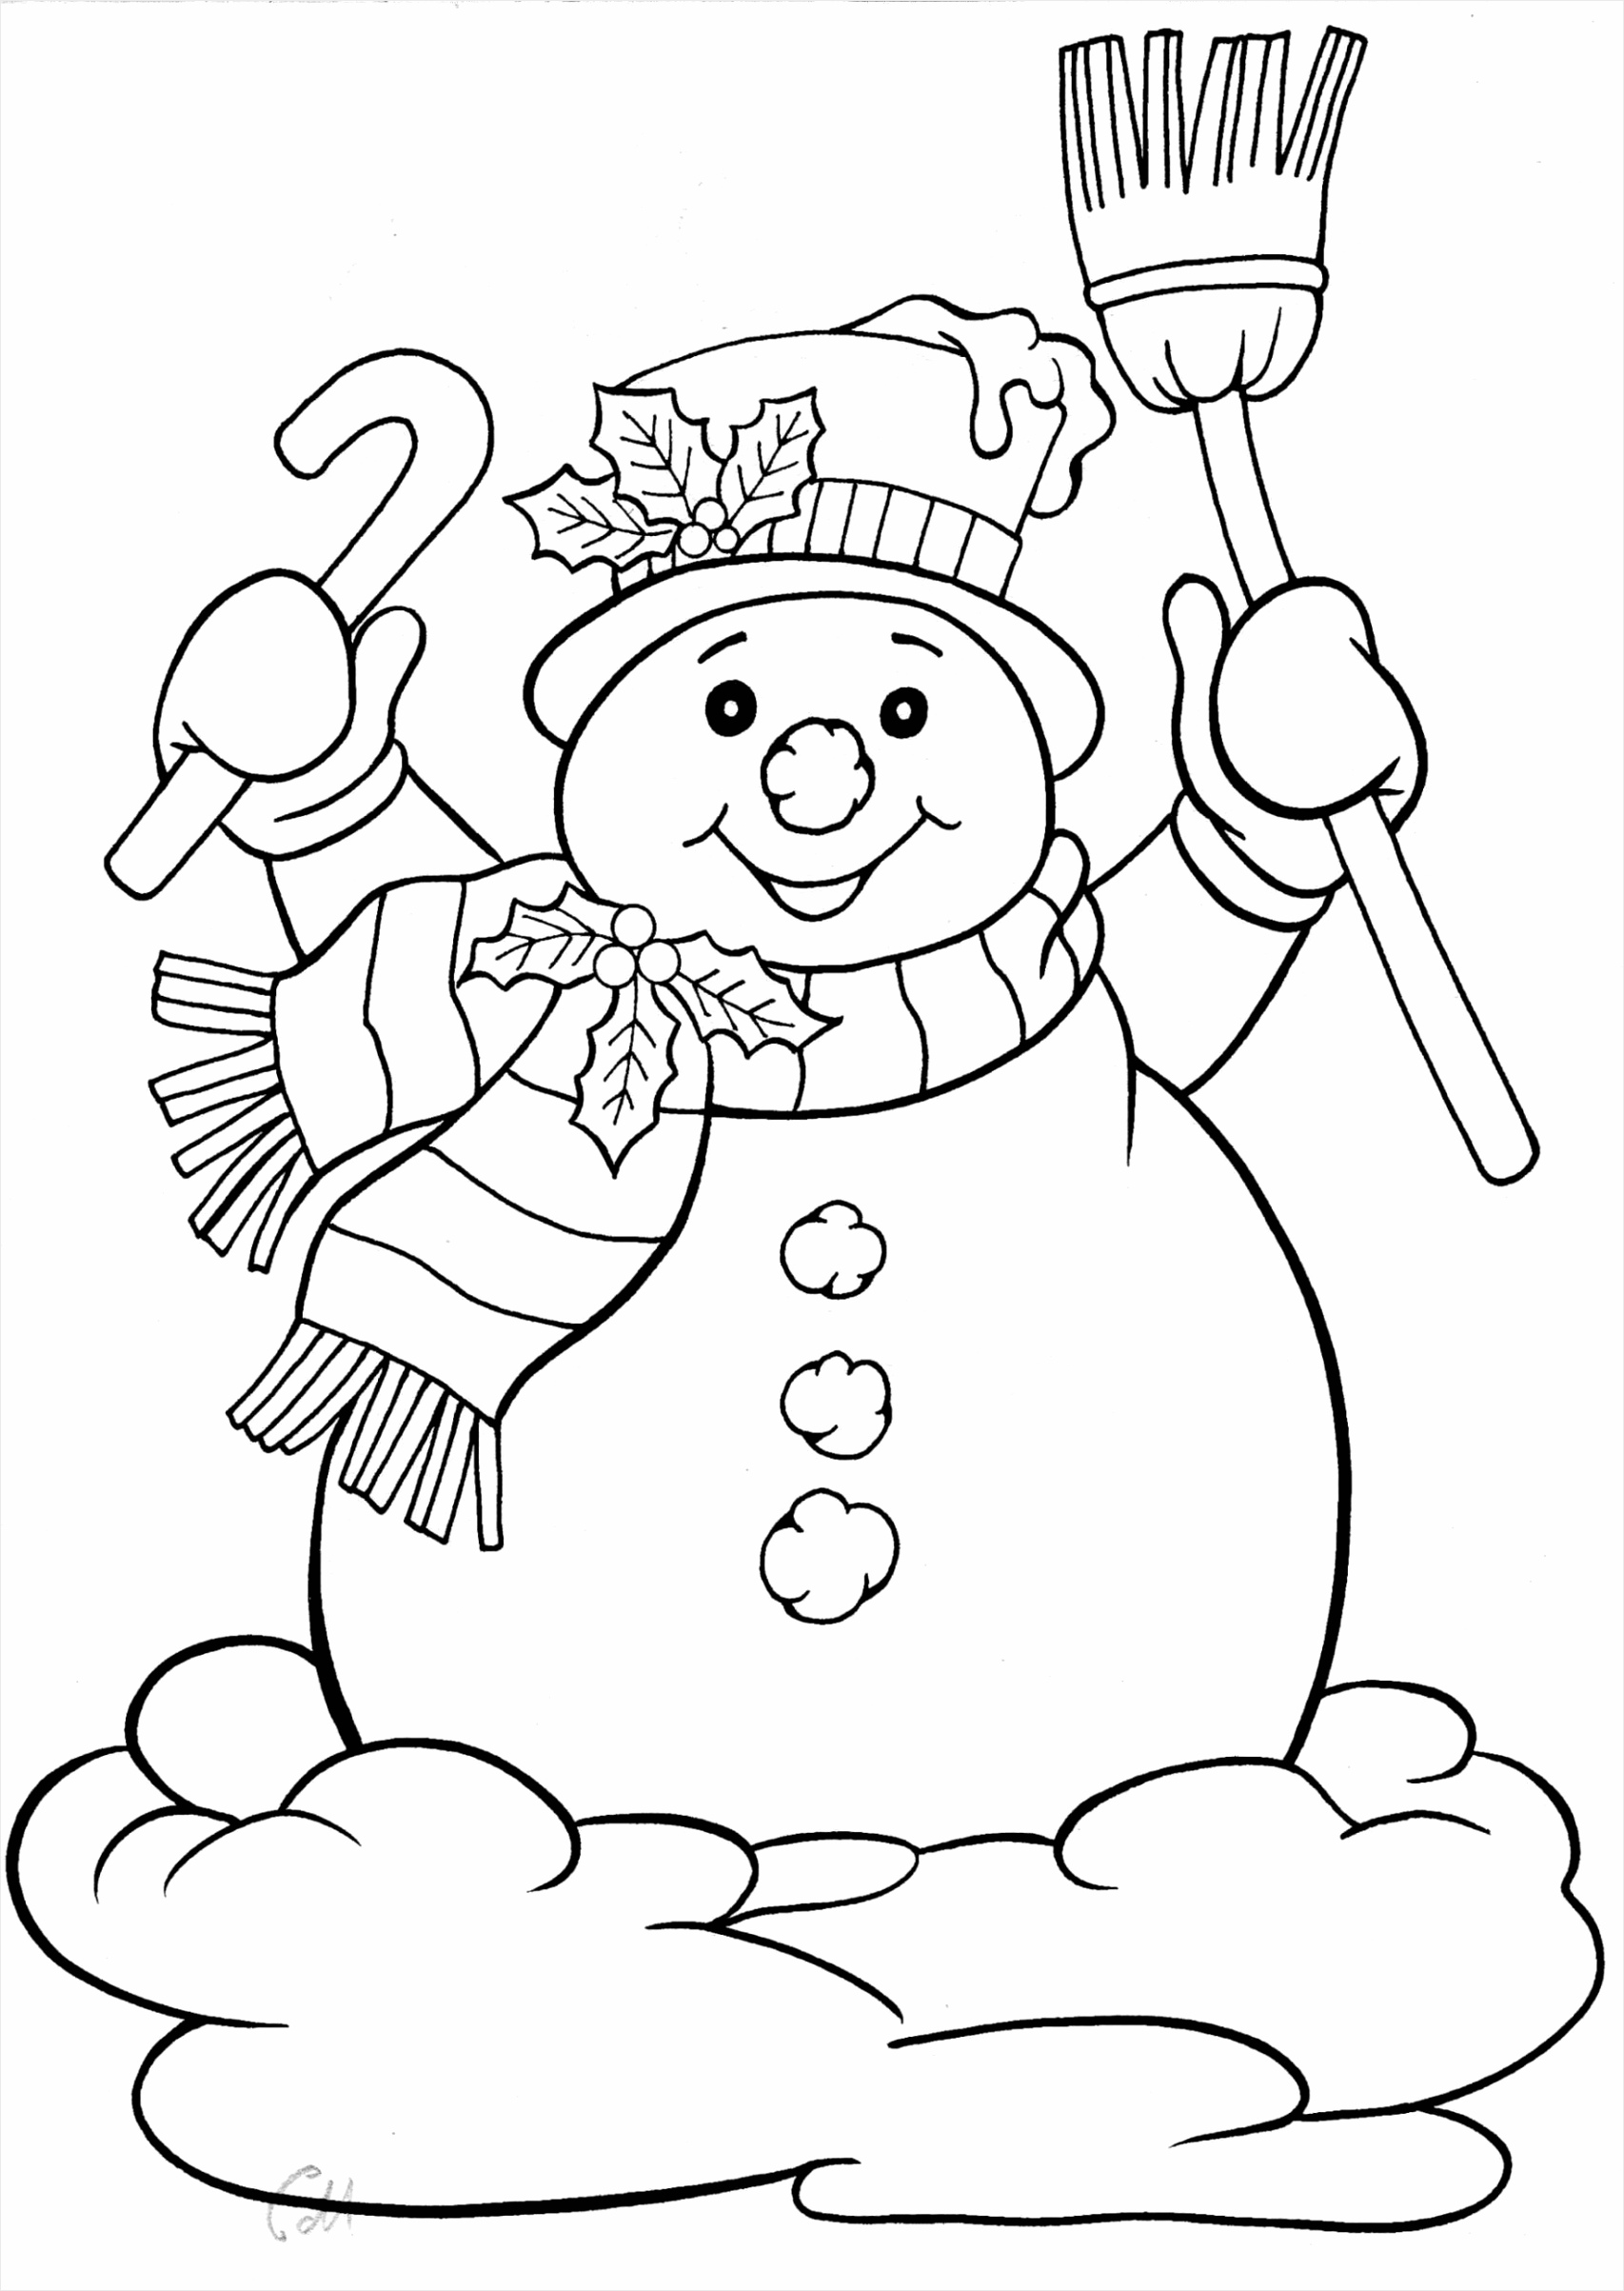 christmasoloring pages for toddlers printable tremendous photo inspirations tree page snowman scaled iyoxy